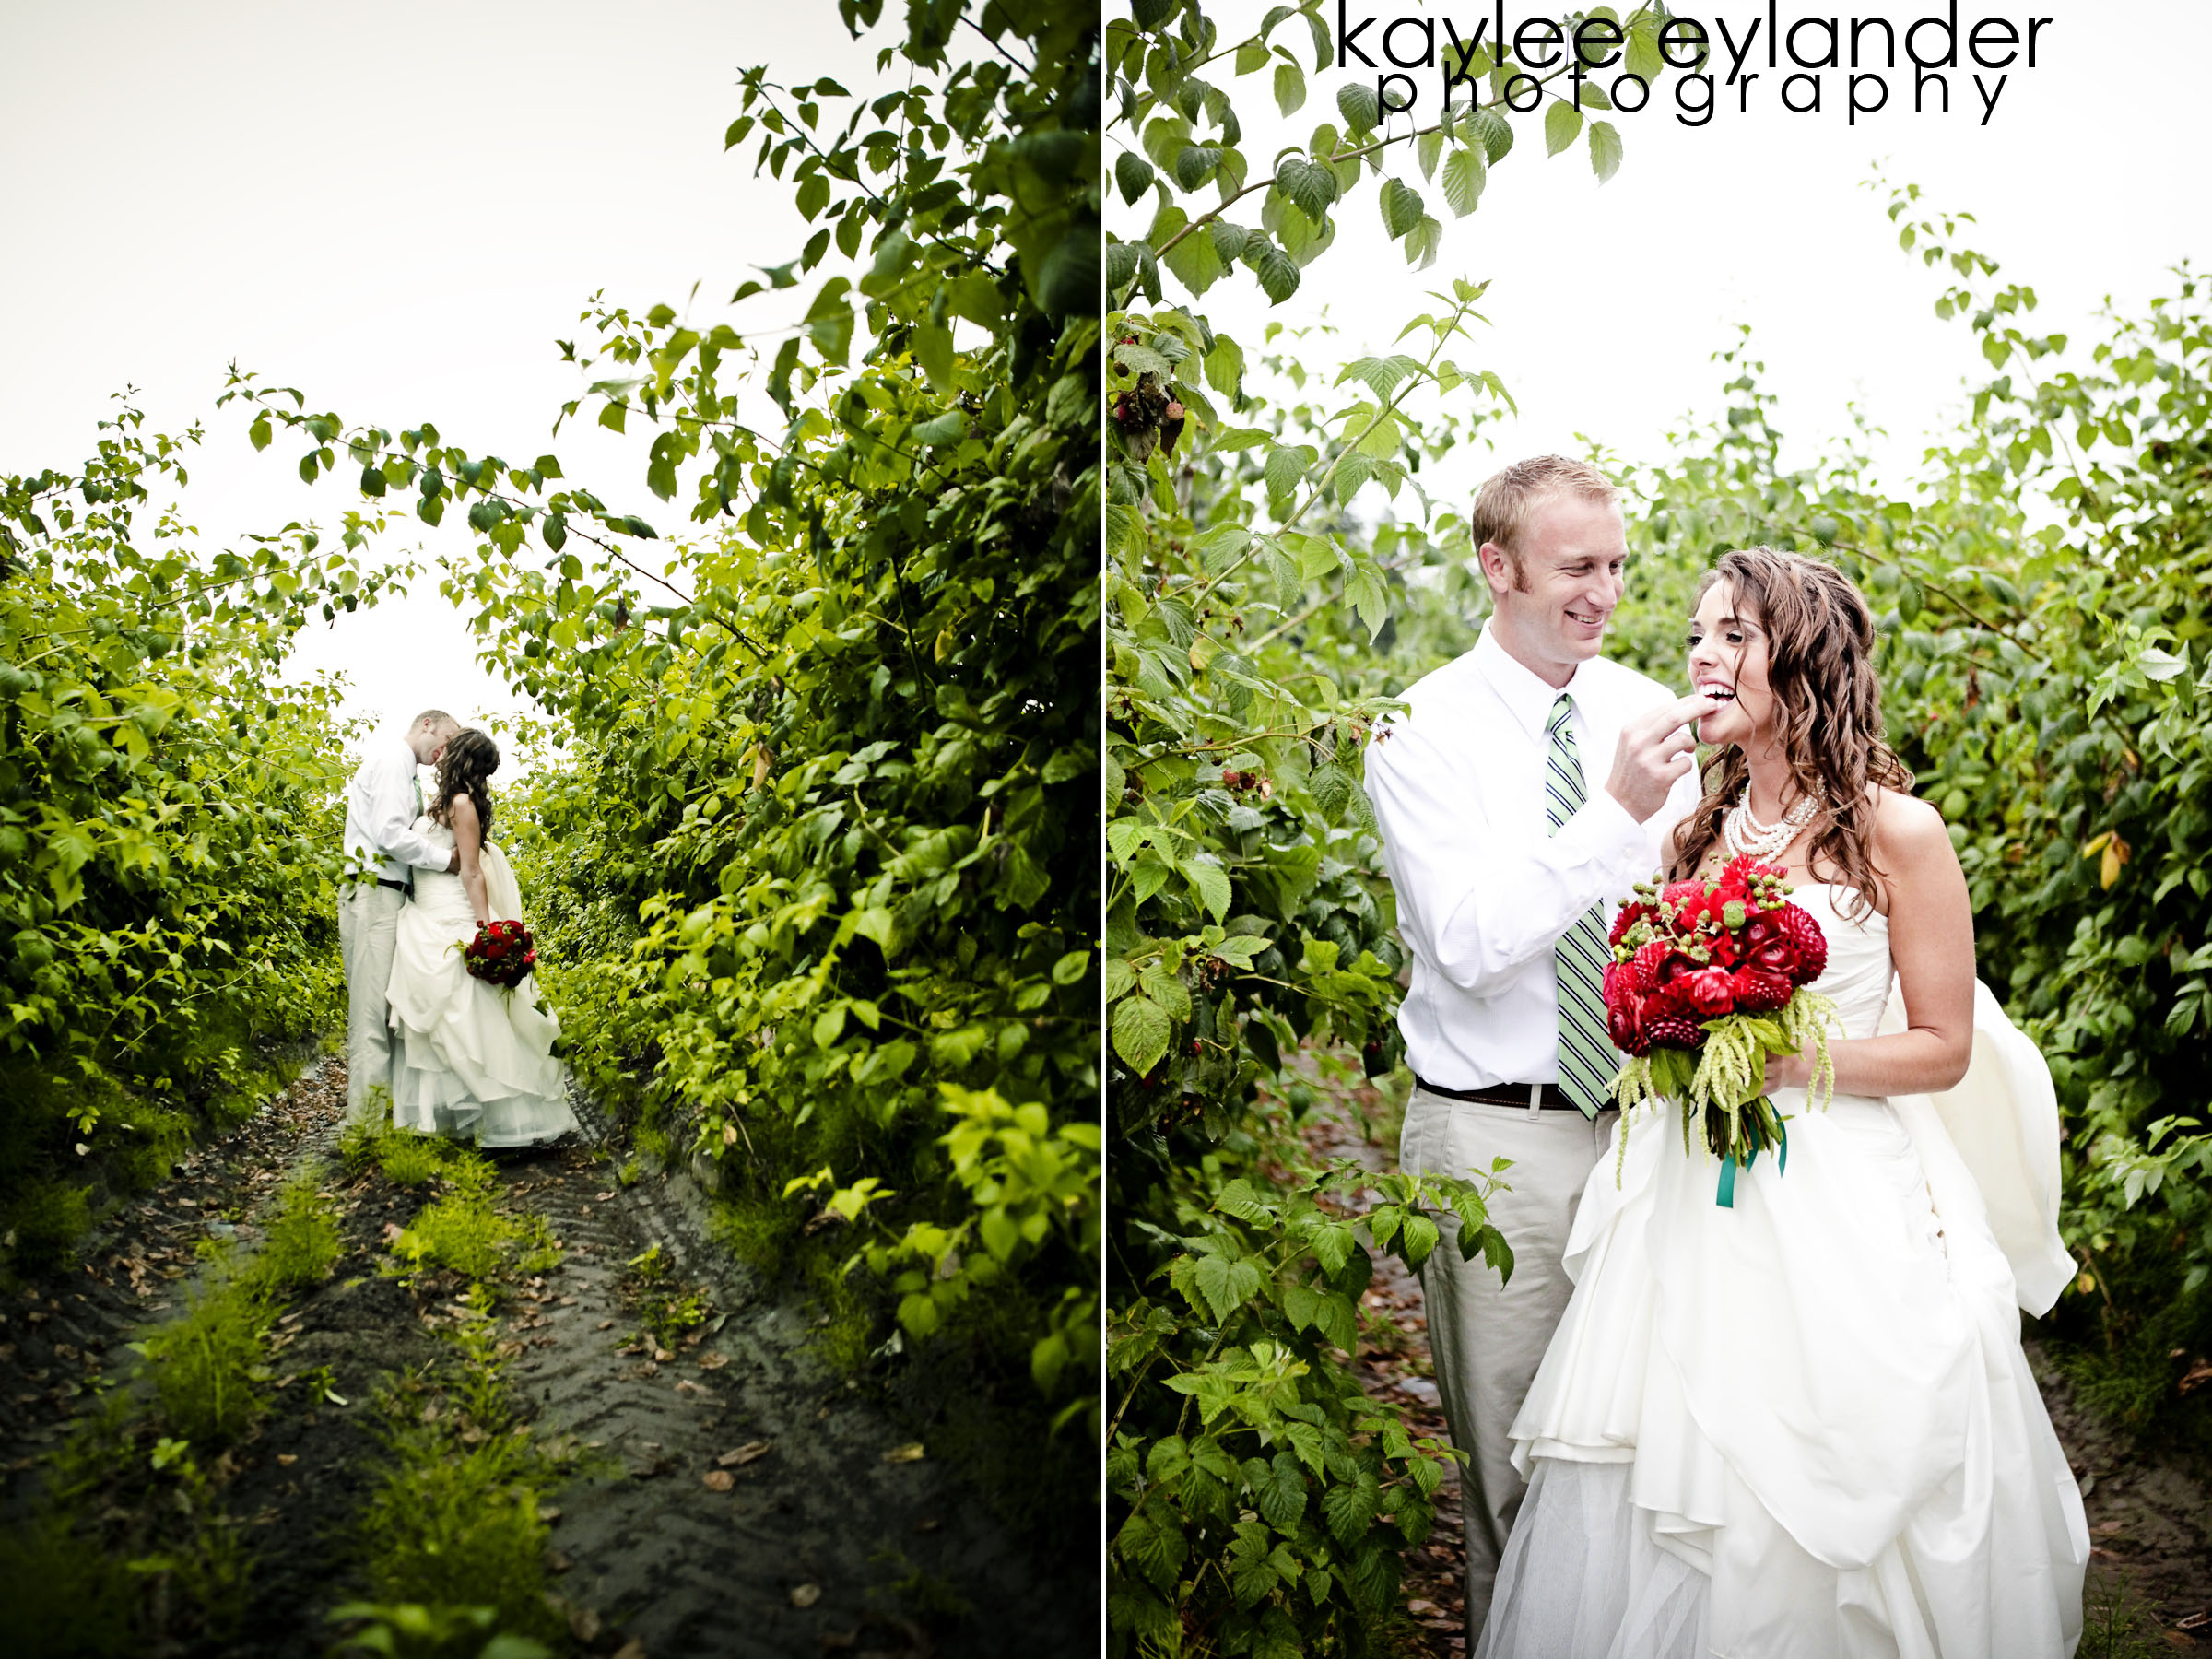 amy Dana web 20 Bellingham DIY Wedding | A Wedding in the rain never looked so good!| Kaylee Eylander